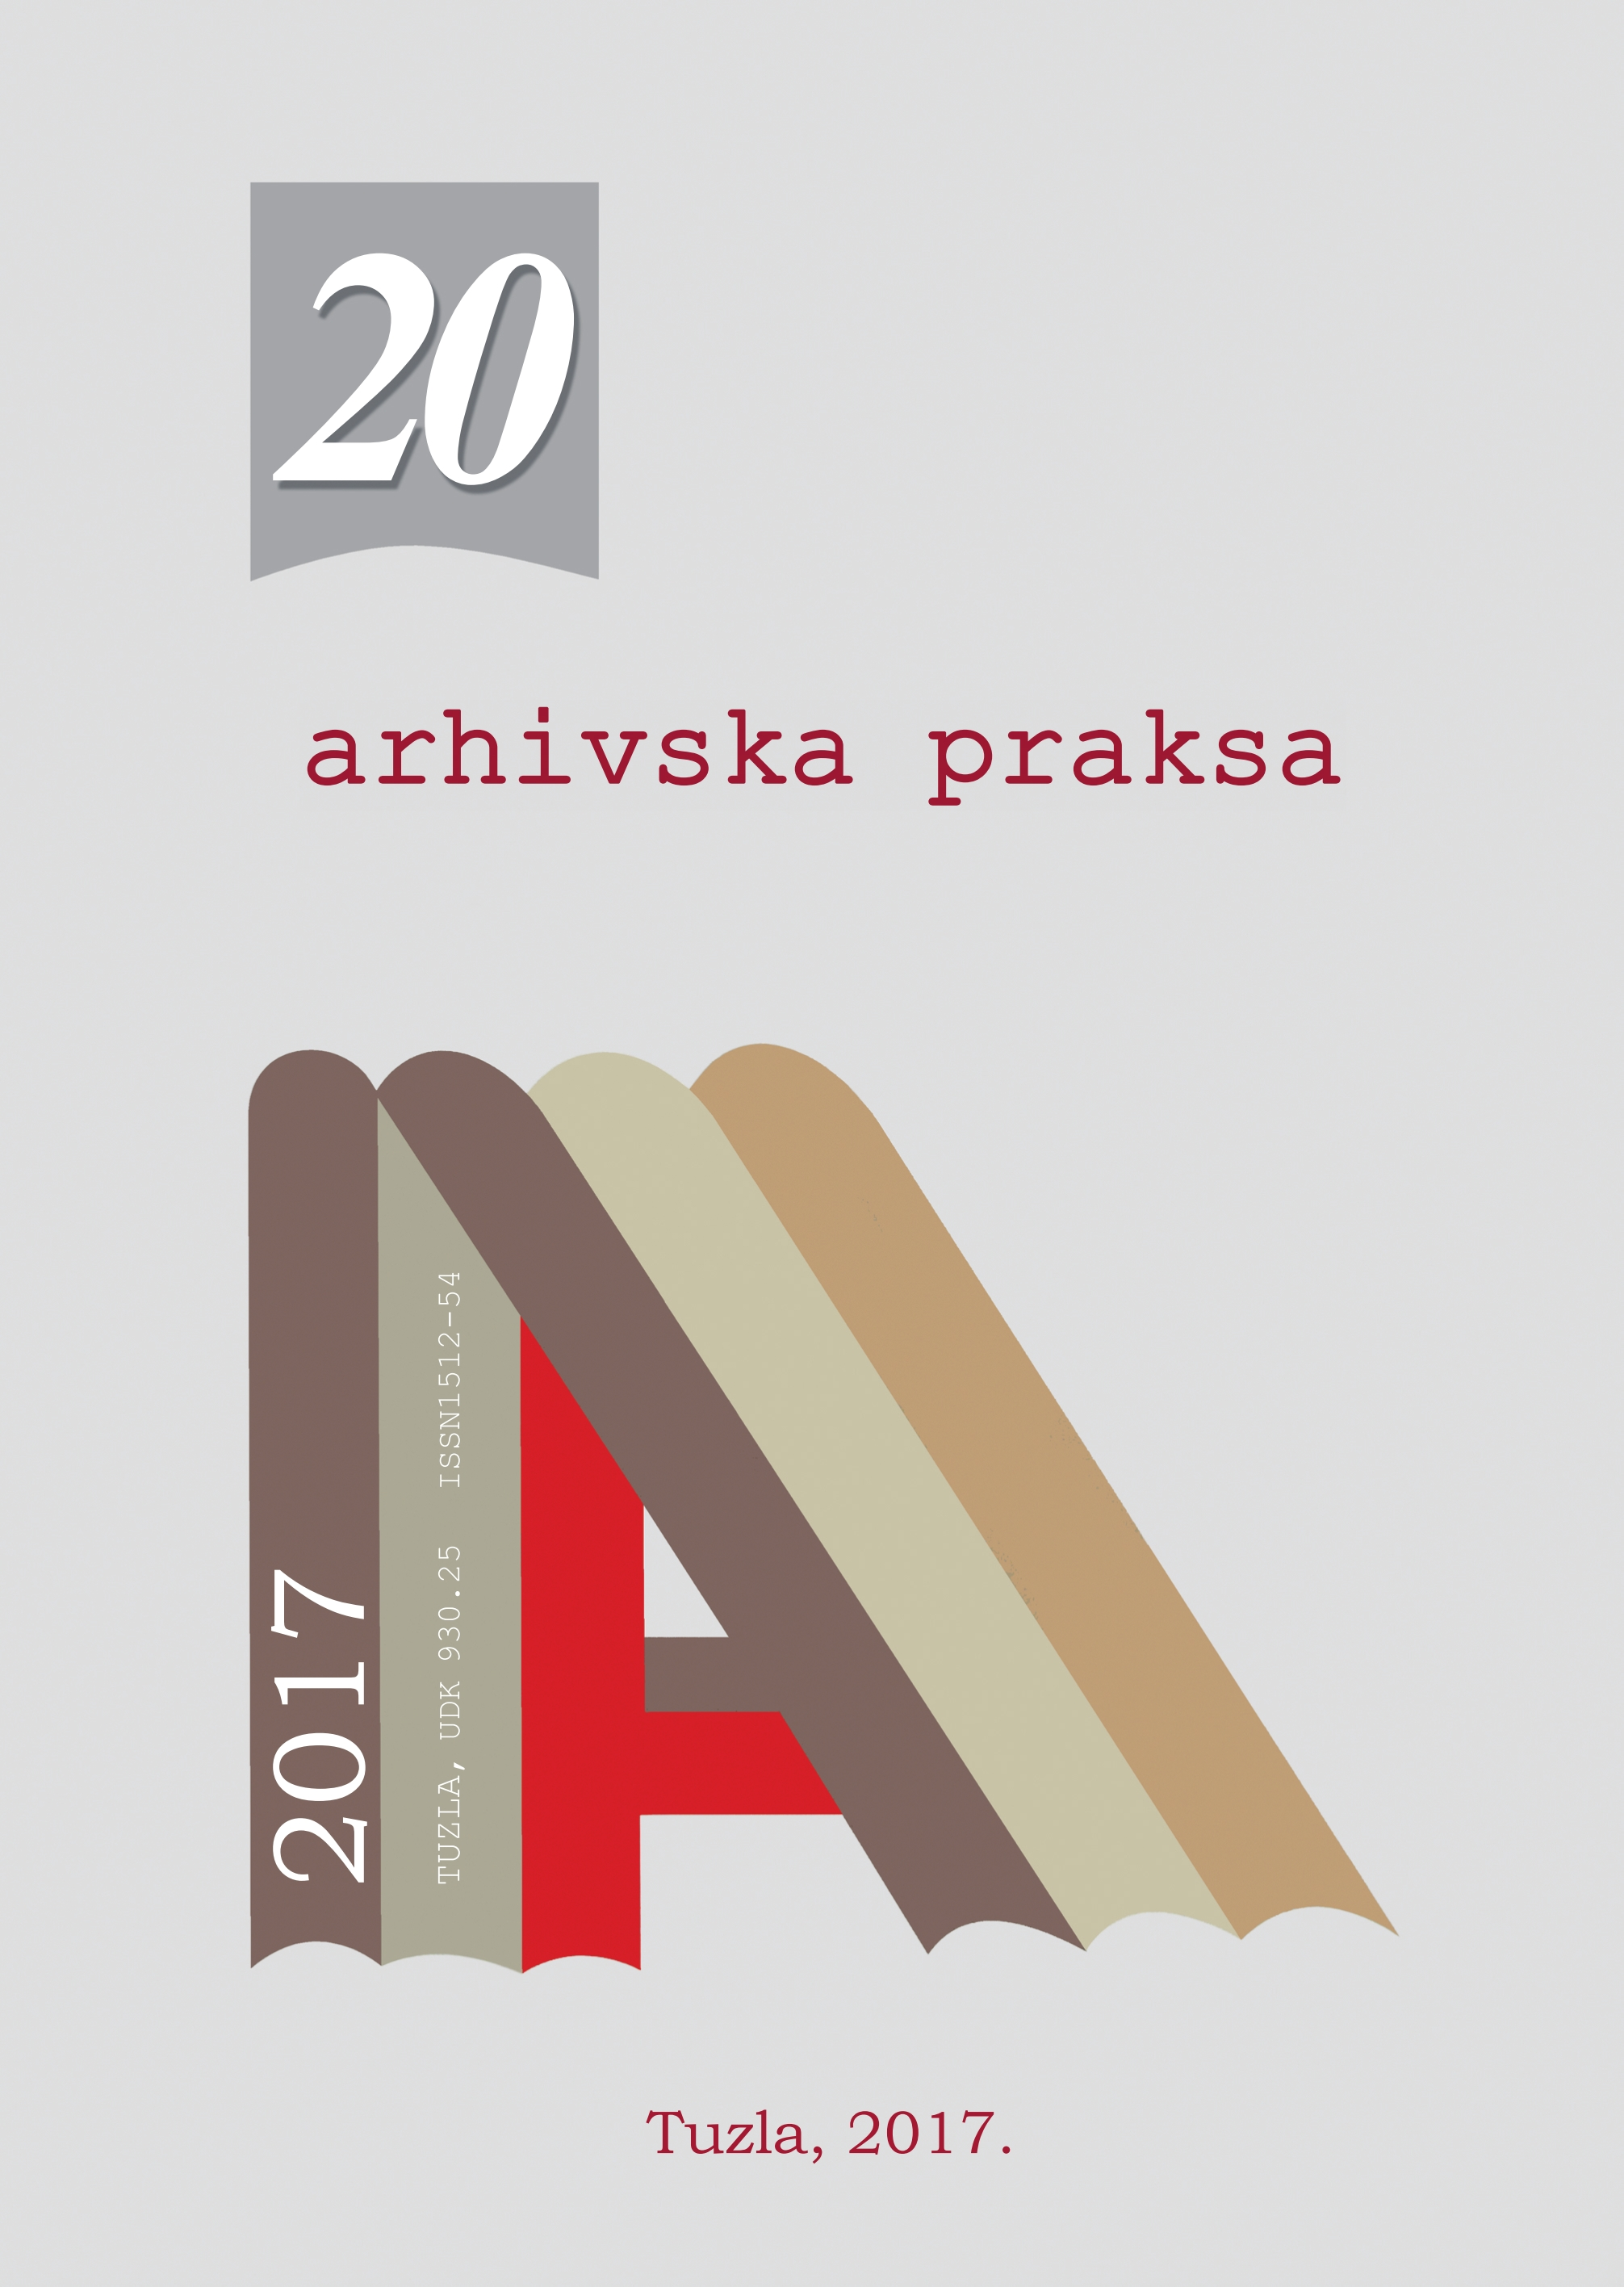 """ARCHIVE PRACTICE"" - CONTRIBUTION TO APPLY TO NEW TRENDS IN ARHIVISTIC WITH A PUBLIC RELATIONS ACT Cover Image"